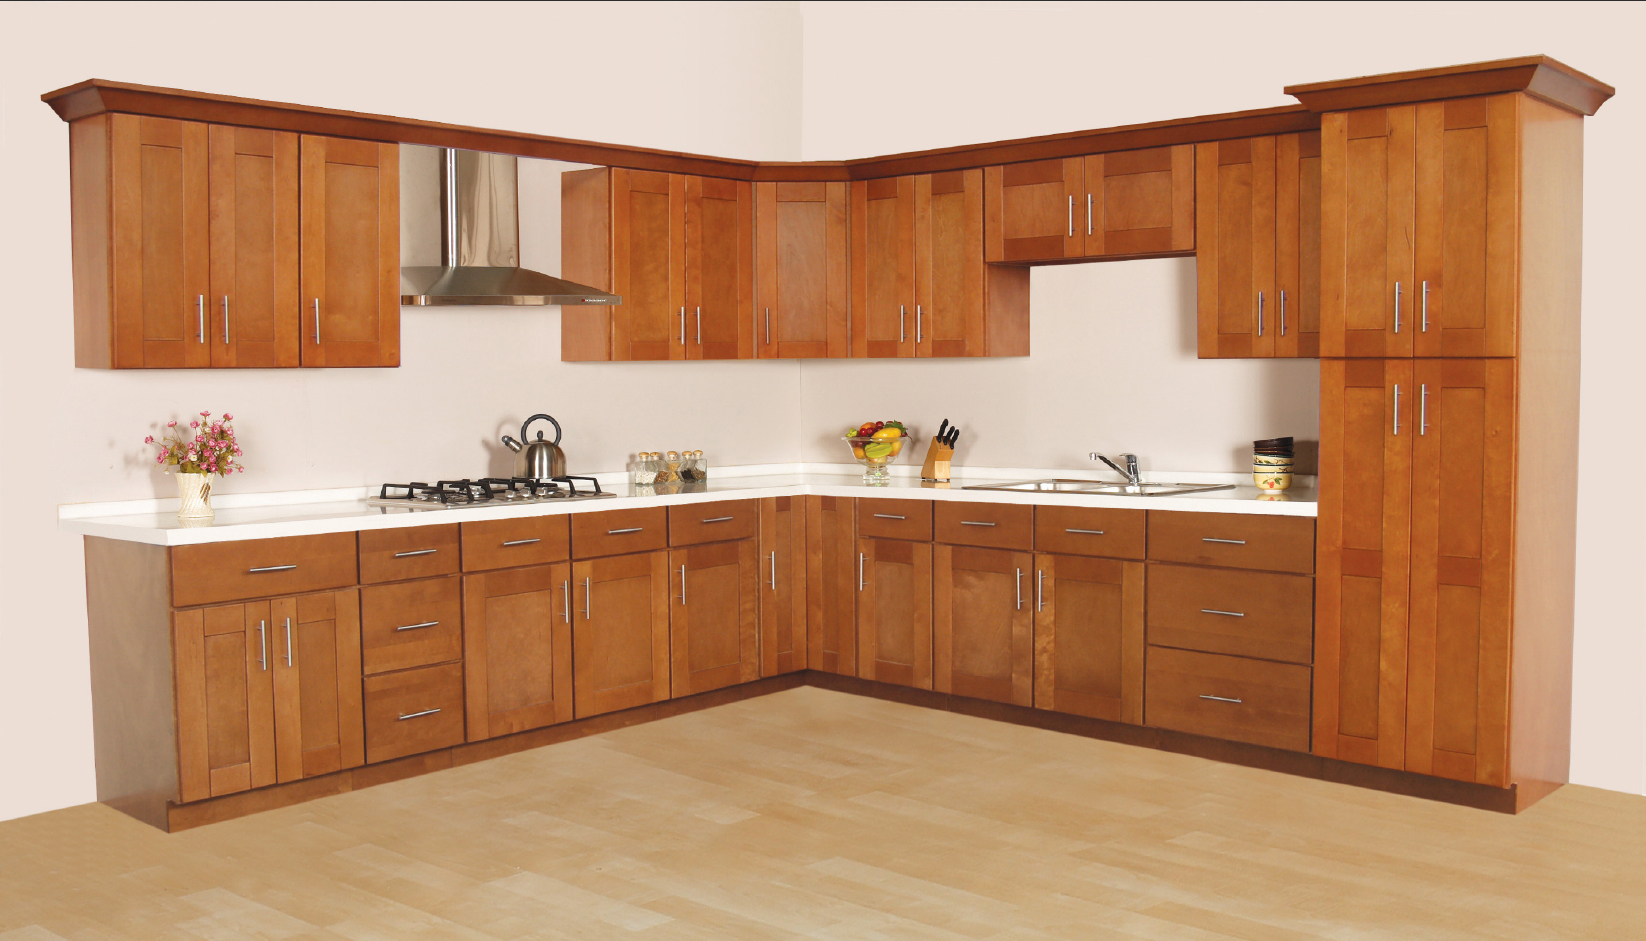 Menards kitchen cabinet price and details home and for Cupboard in the kitchen